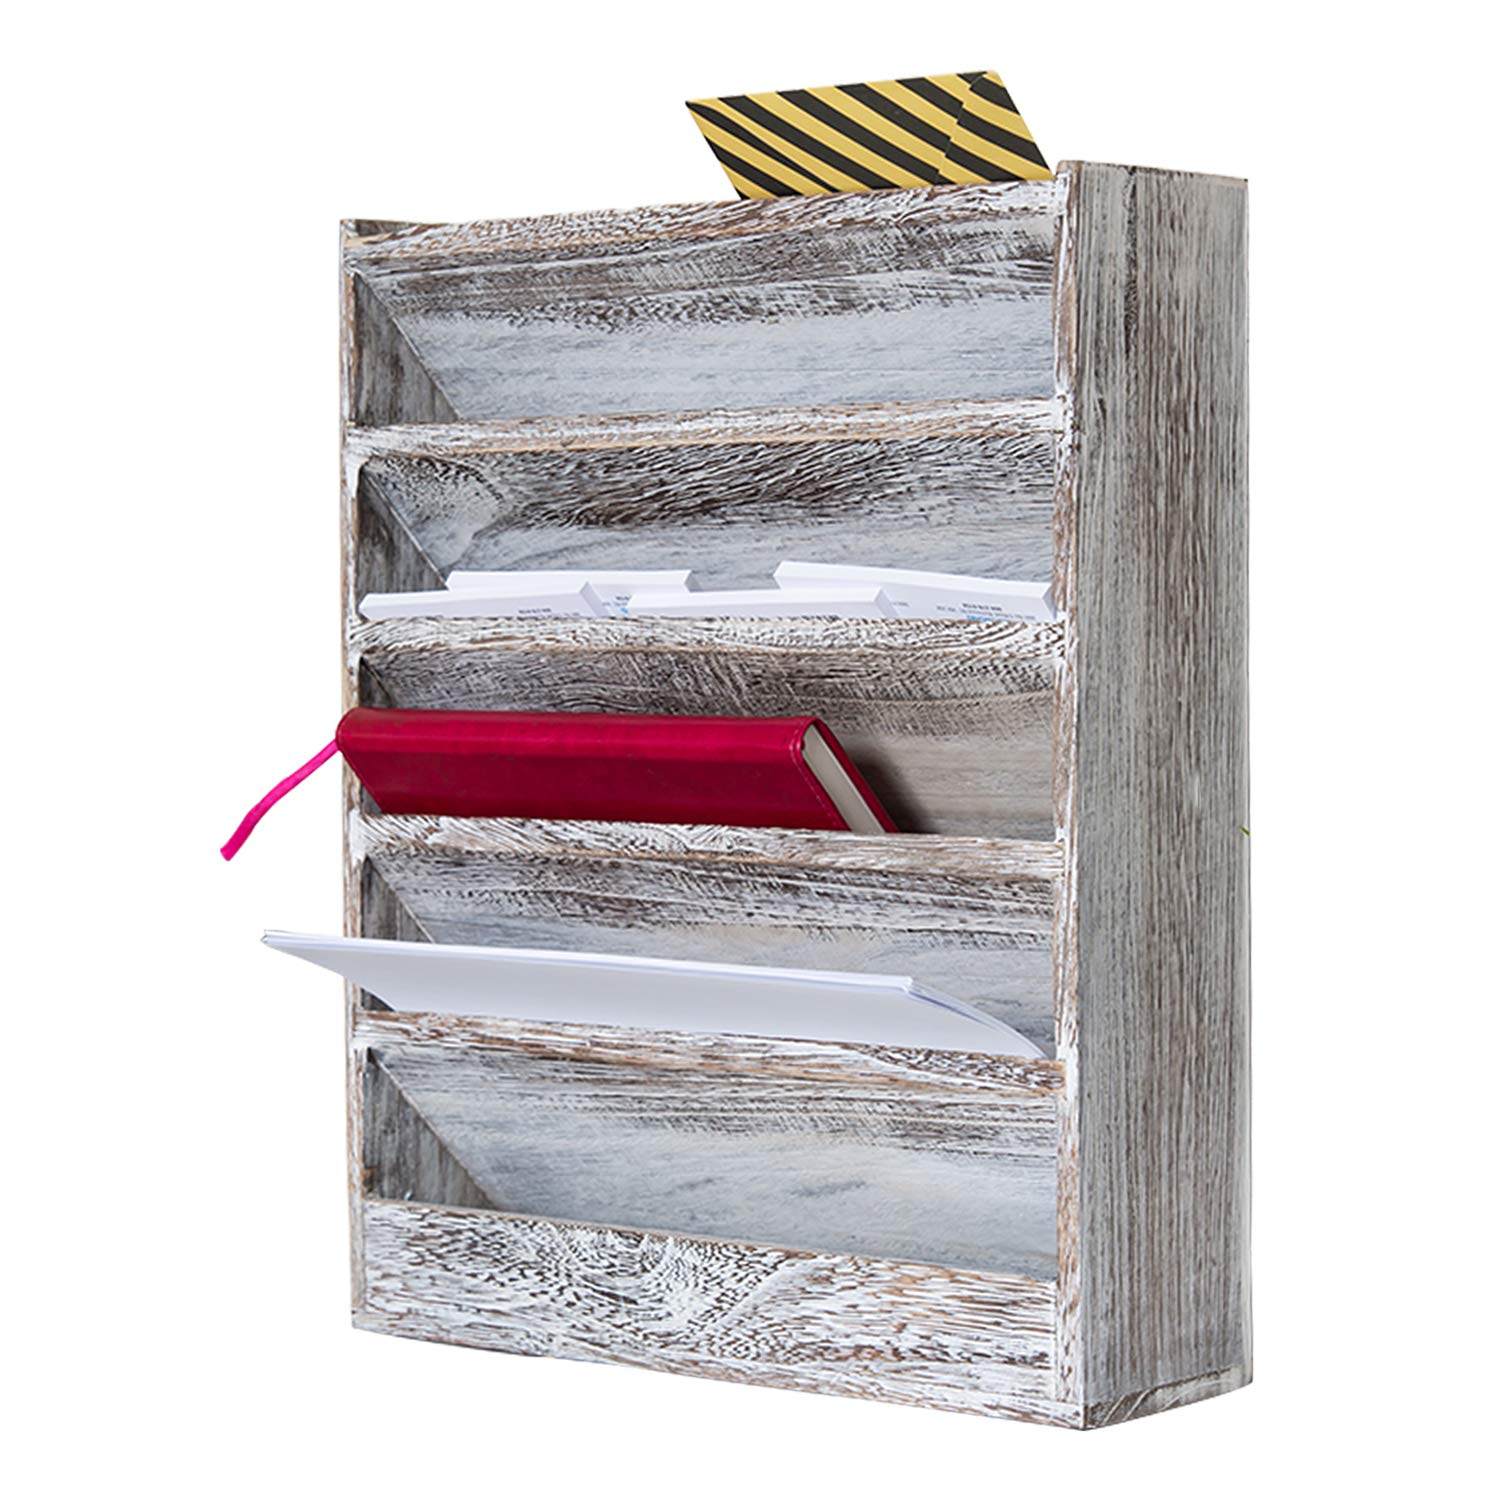 Comfify Rustic Wood Document Filing Organizer for Home or Office - Wall Mounted Magazine Holder with 5 Slots - Mail Organizer for Wall - Real Torched Wood Mail Rack Tray - Rustic White by Comfify